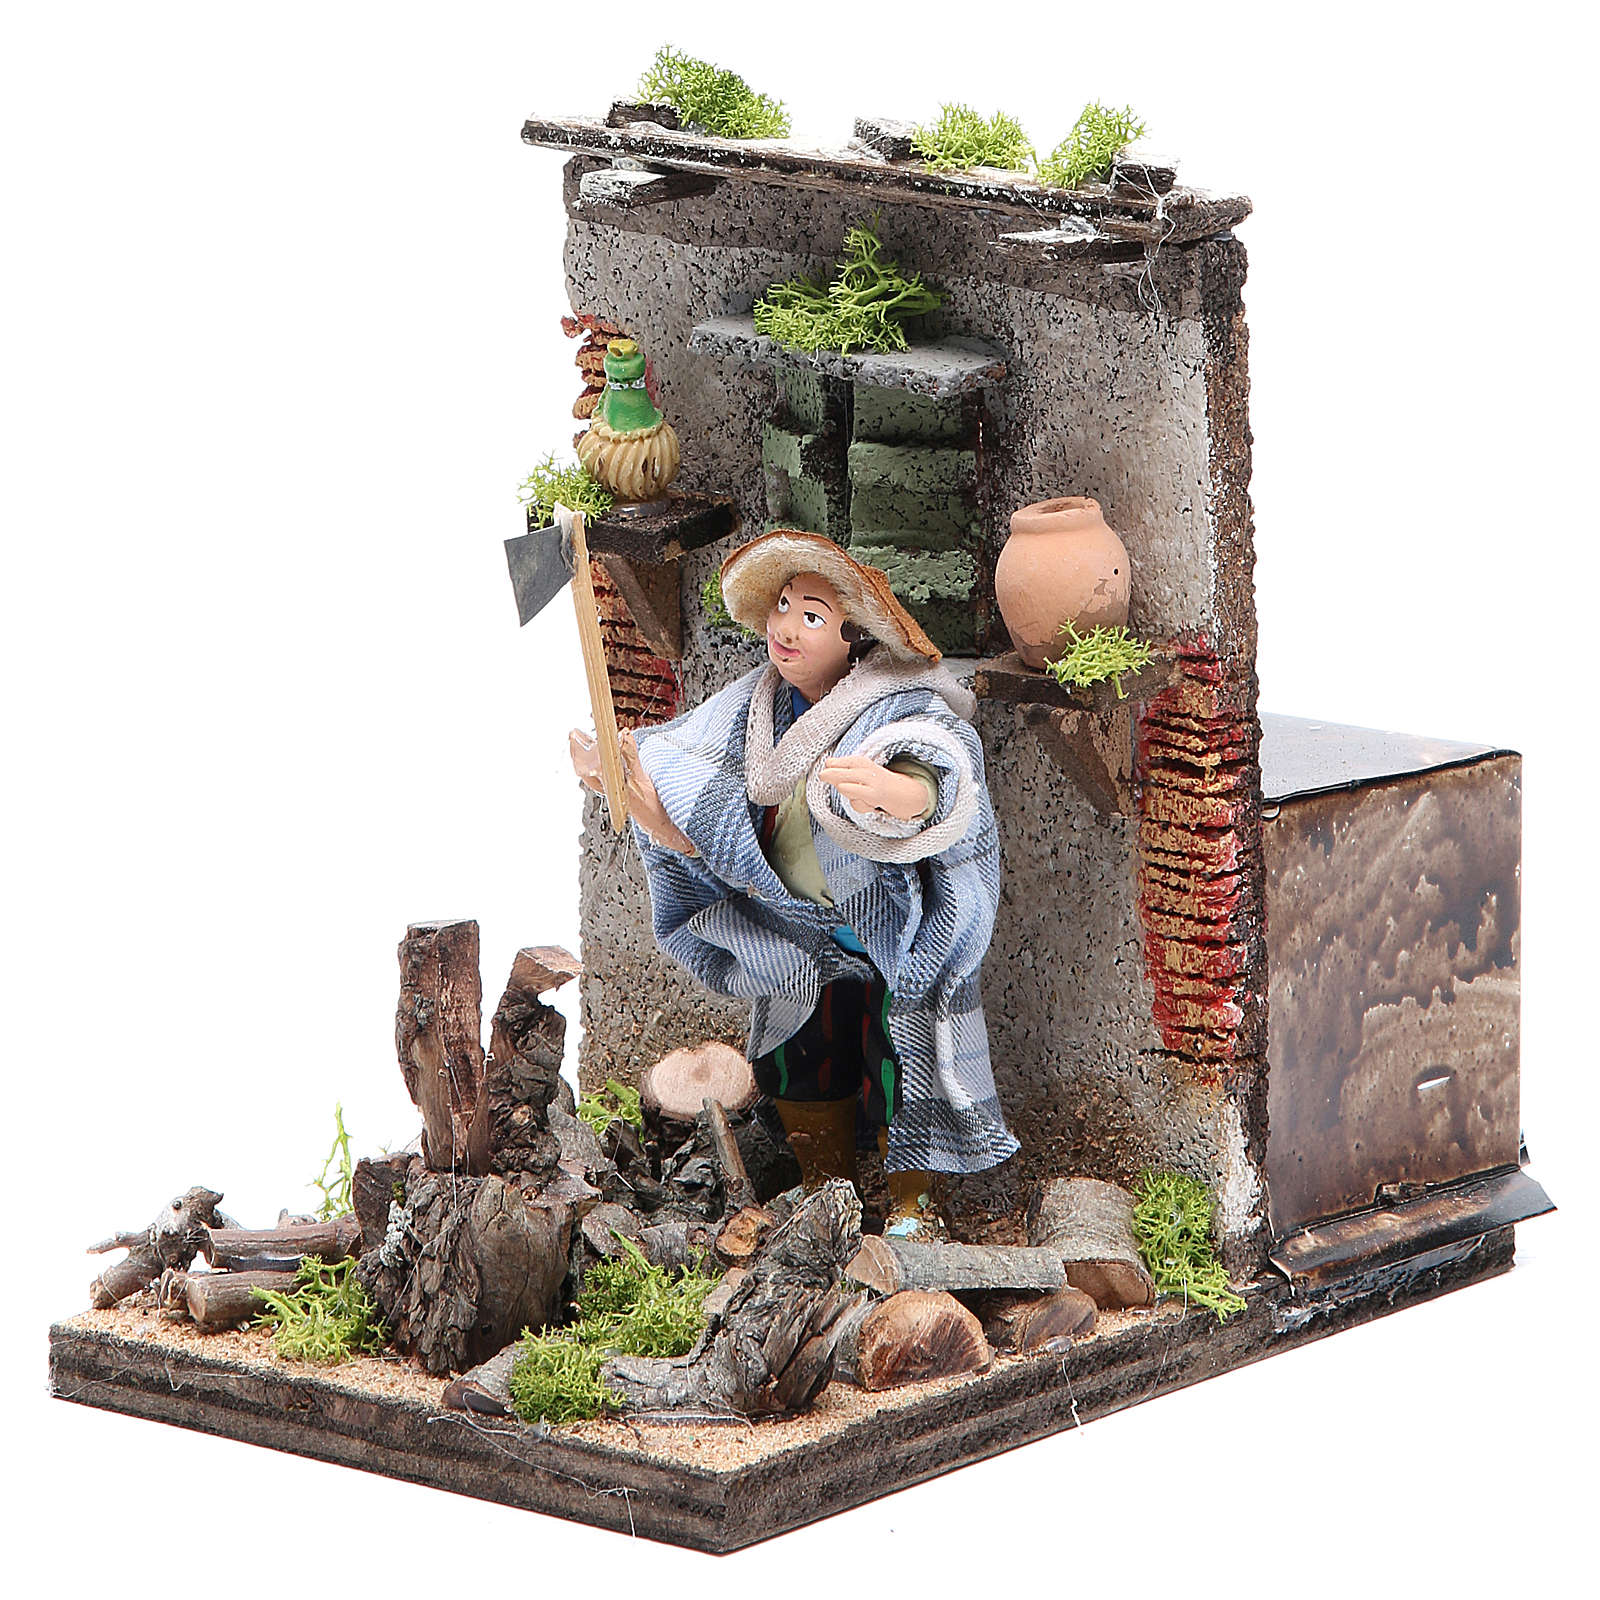 Woodcutter measuring 10cm, animated nativity figurine 4